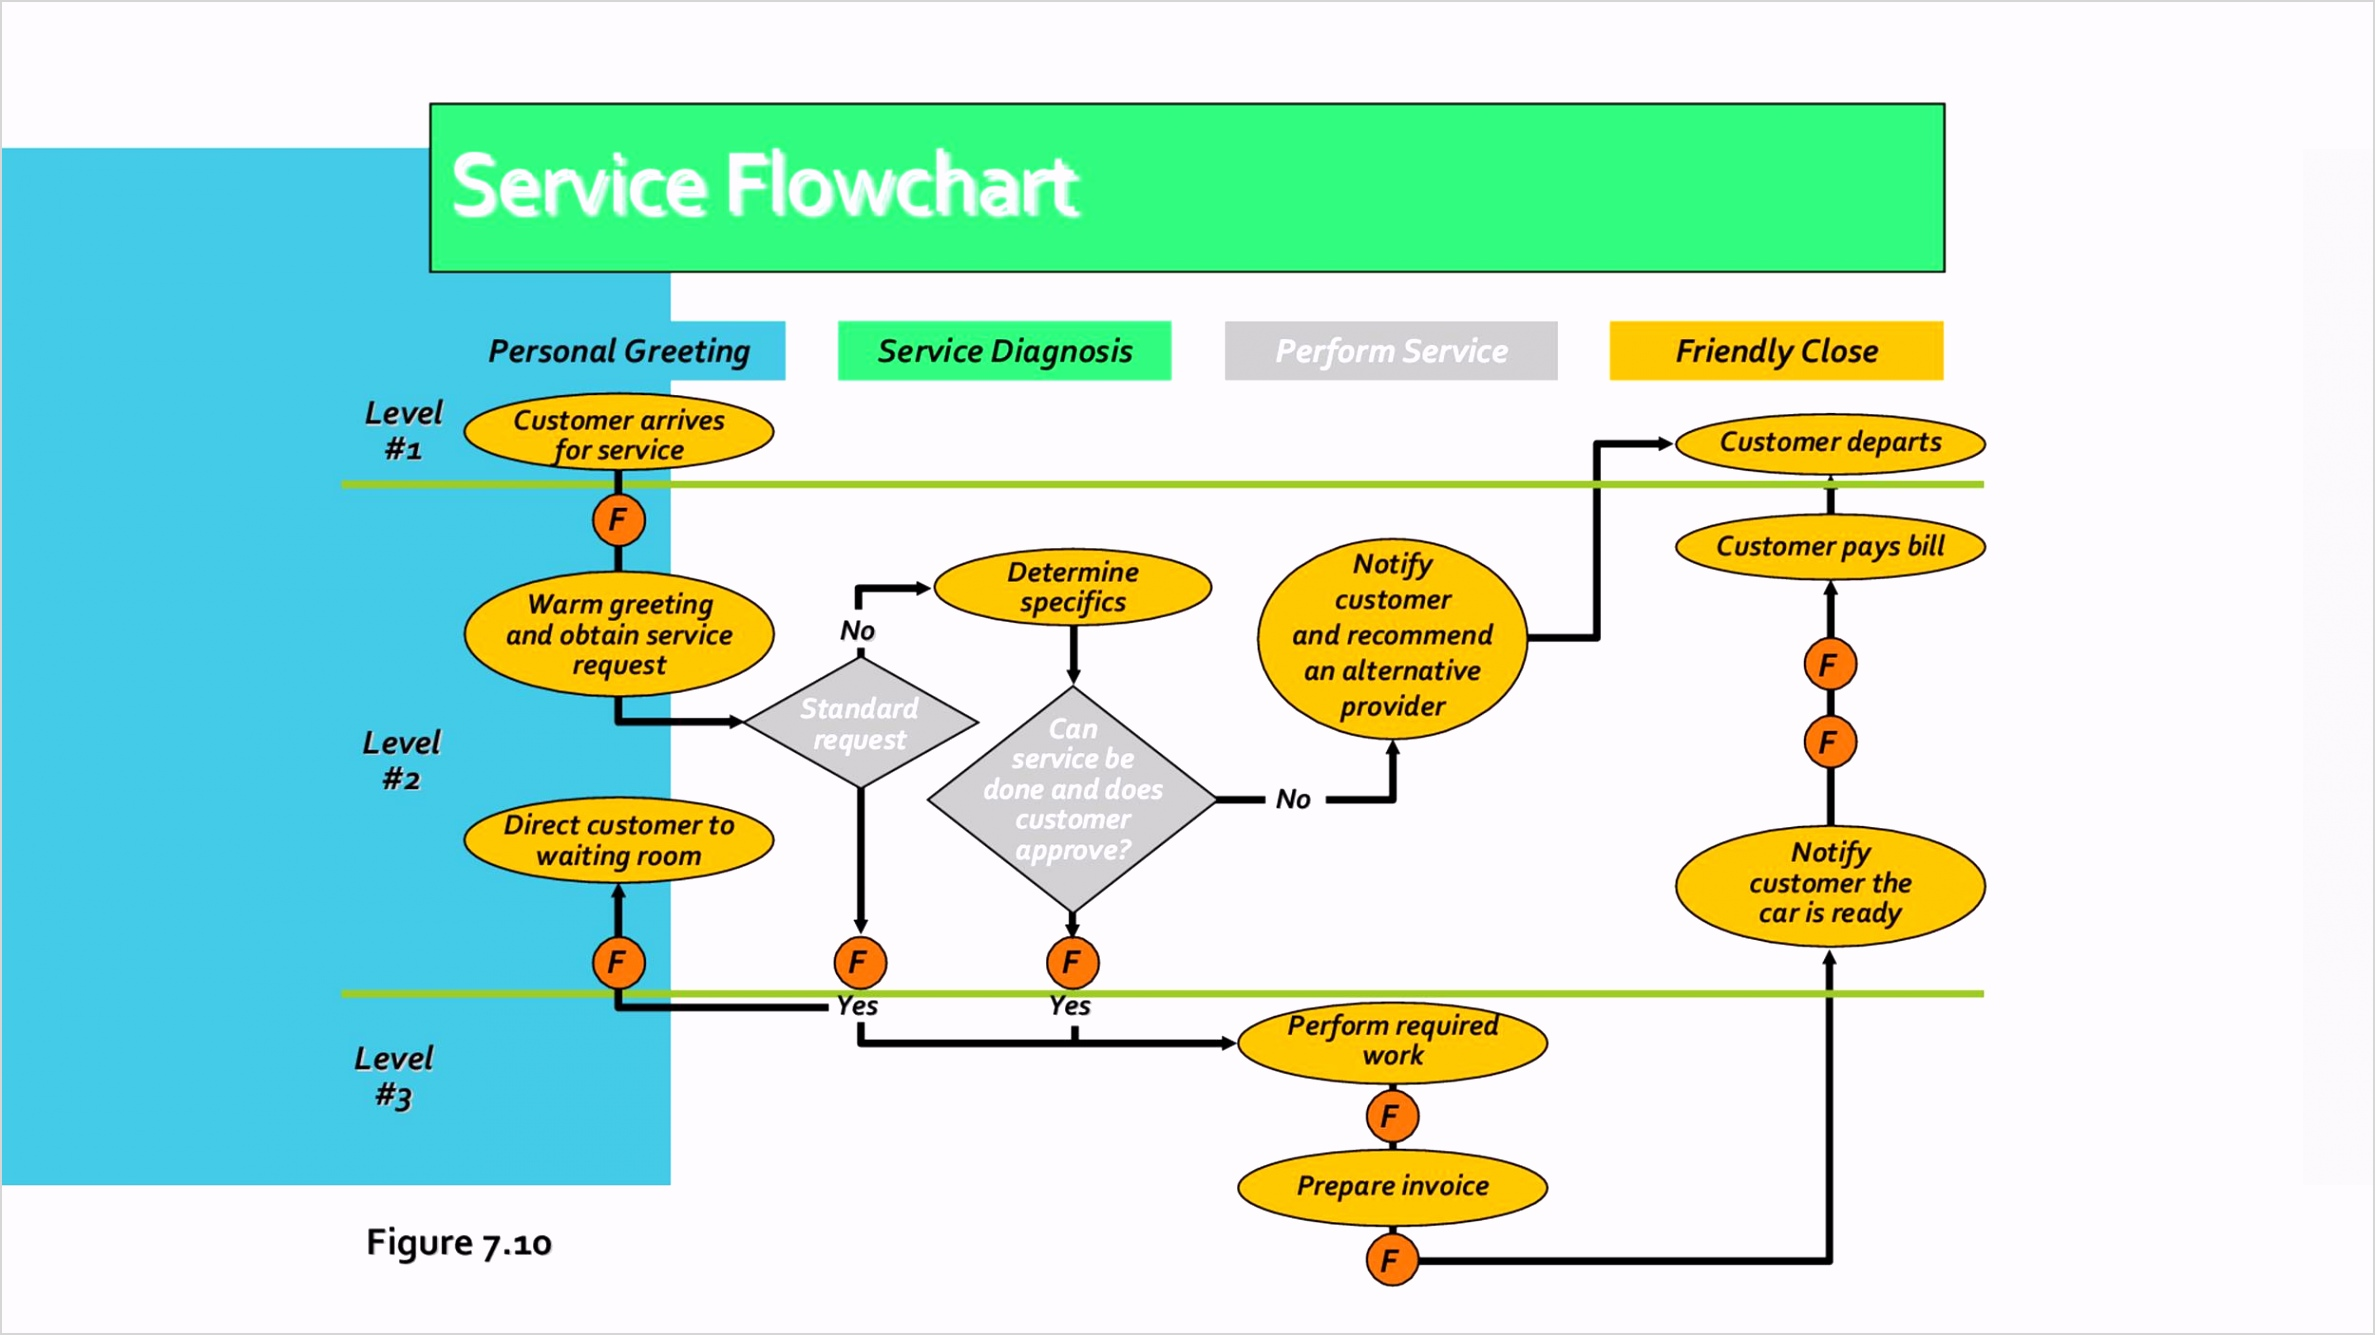 41 Fantastic Flow Chart Templates [Word Excel Power Point]